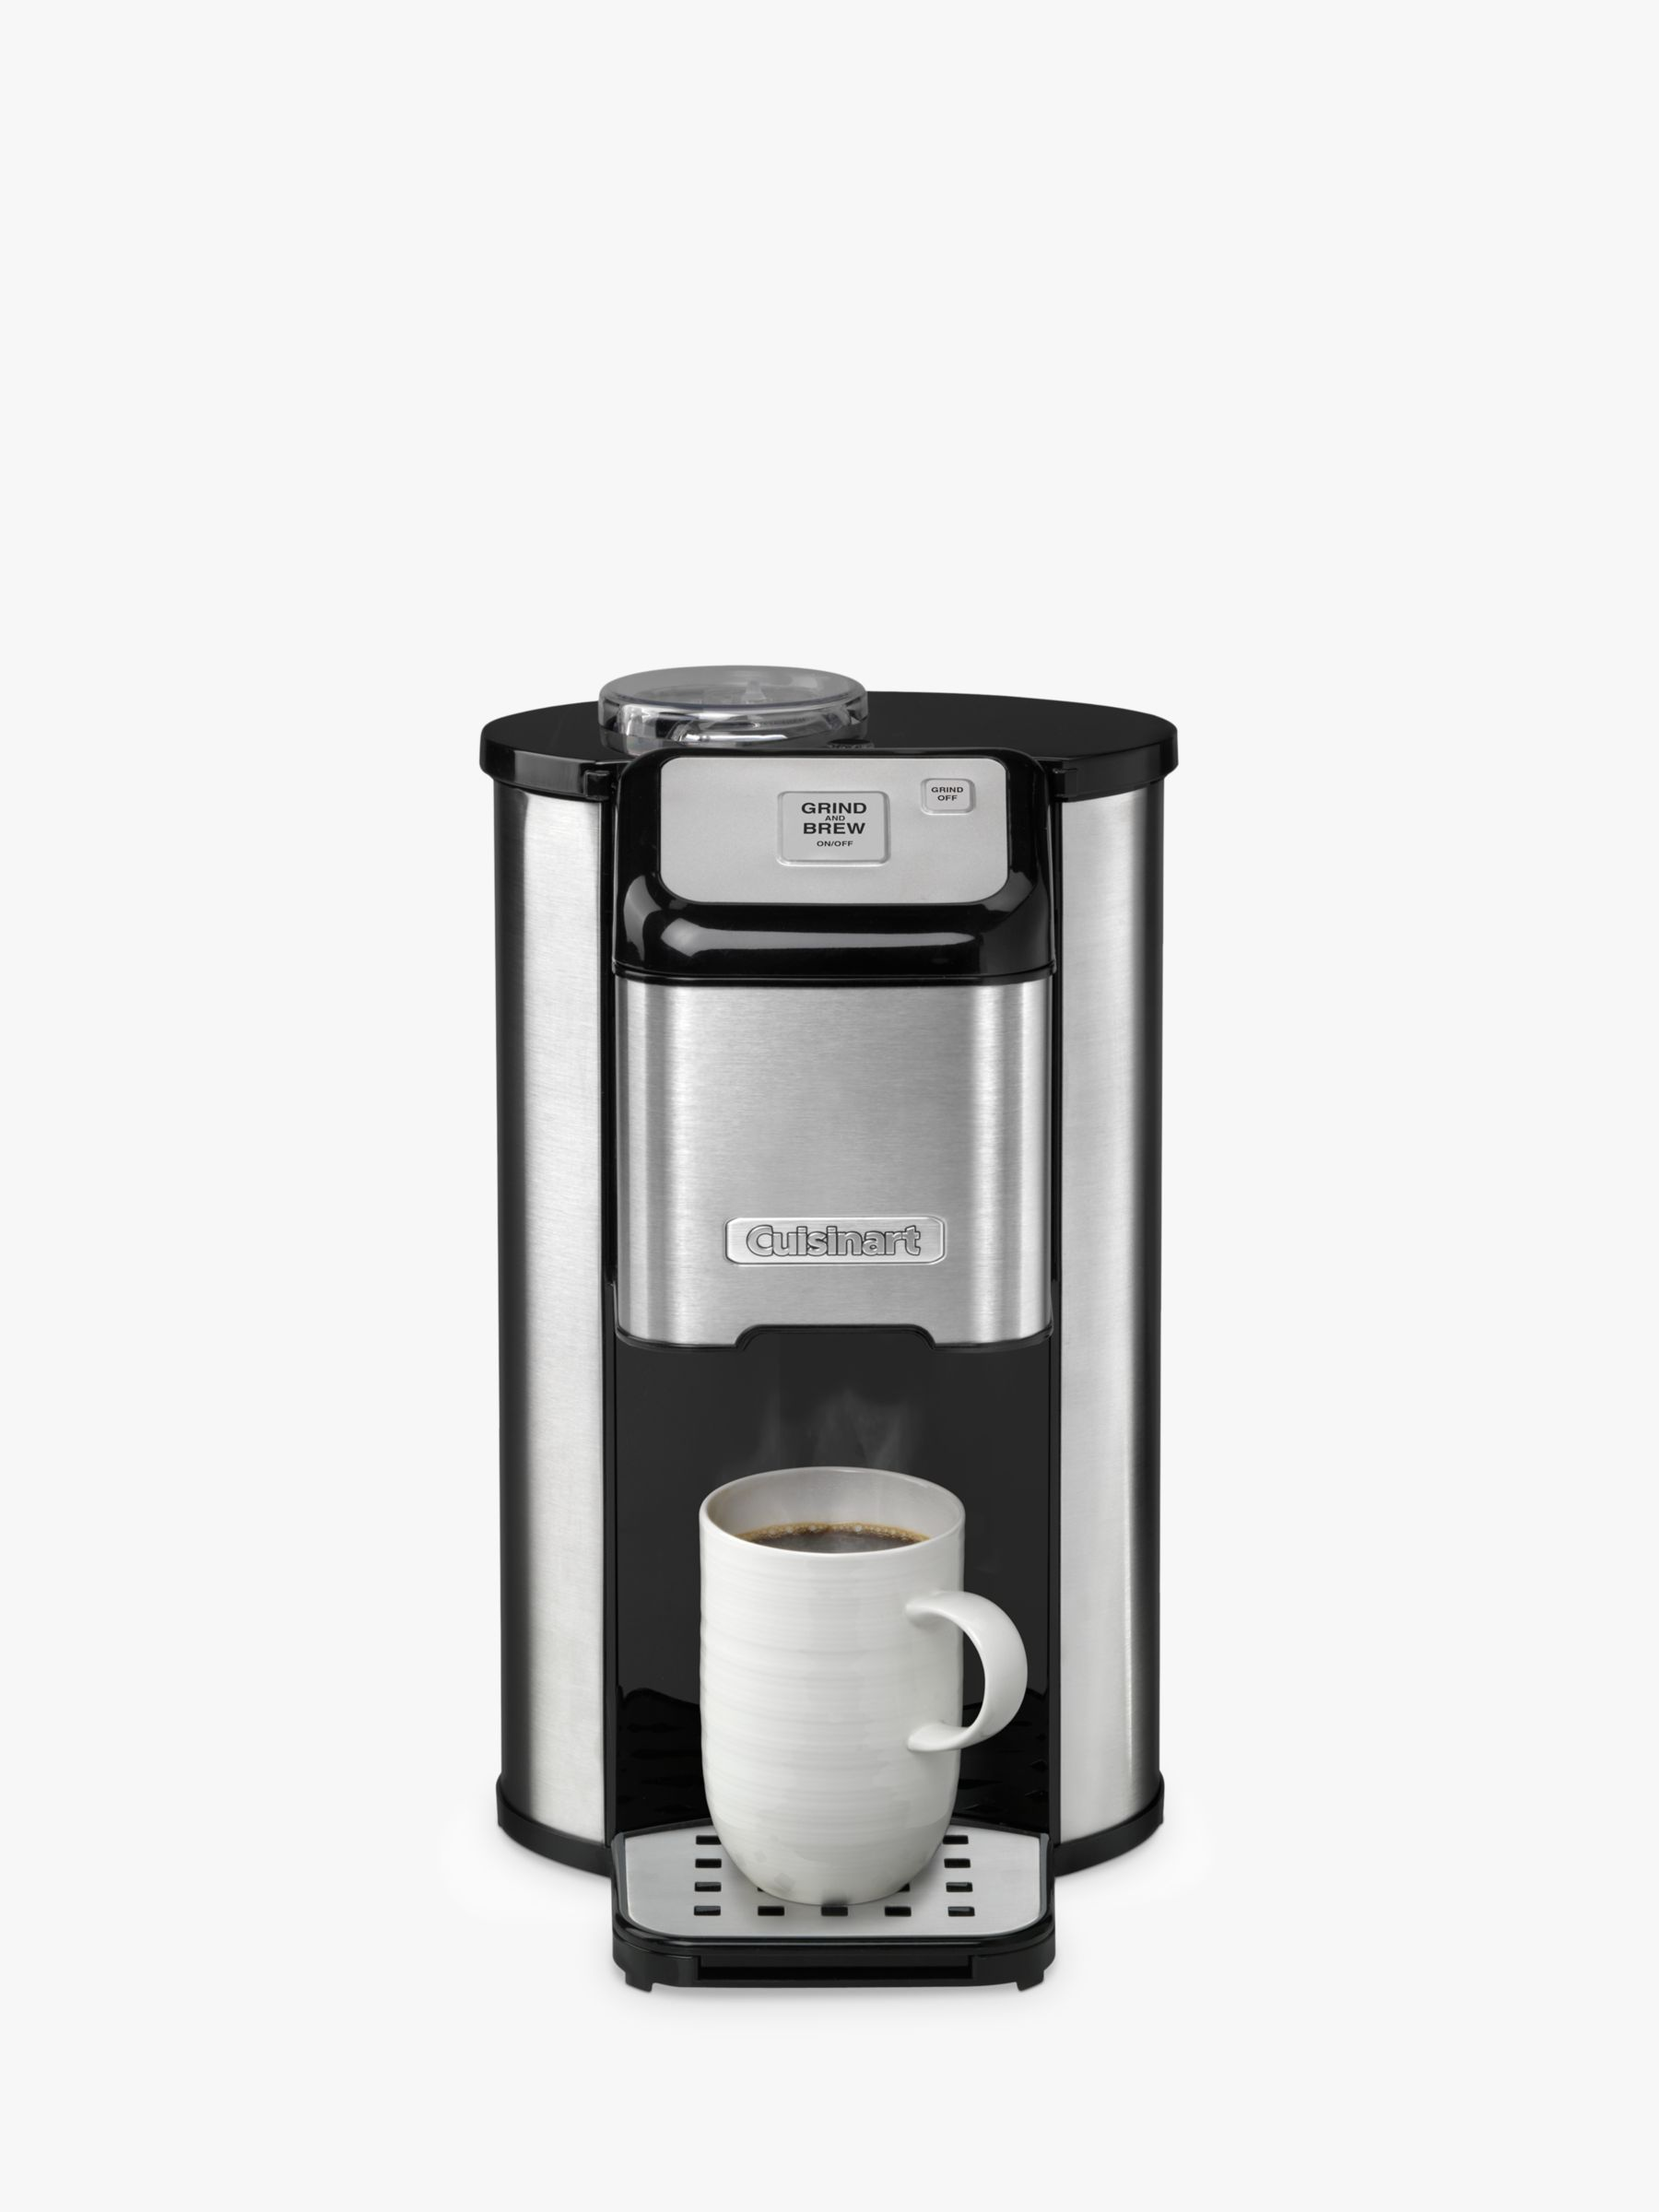 Italian Coffee Maker John Lewis : Buy Cuisinart DGB1U Bean-to-Cup Coffee Machine, Stainless Steel John Lewis